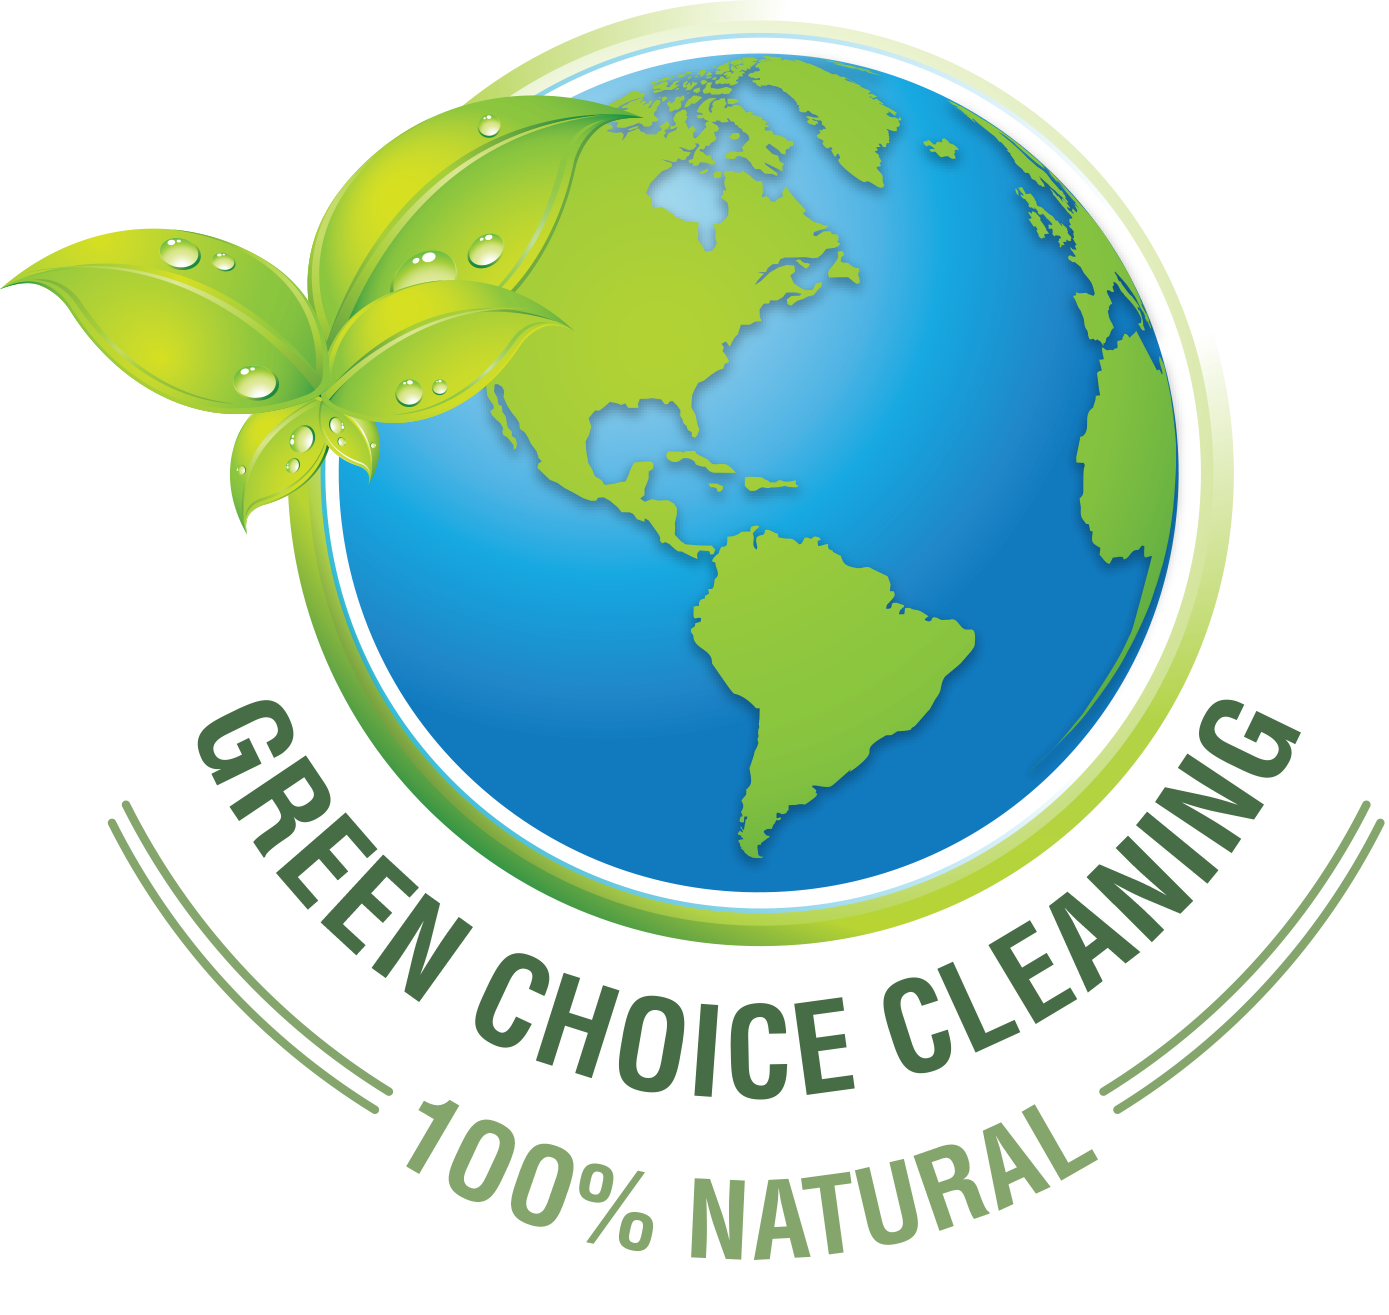 Environment vector clean. Greenchoice eco friendly house